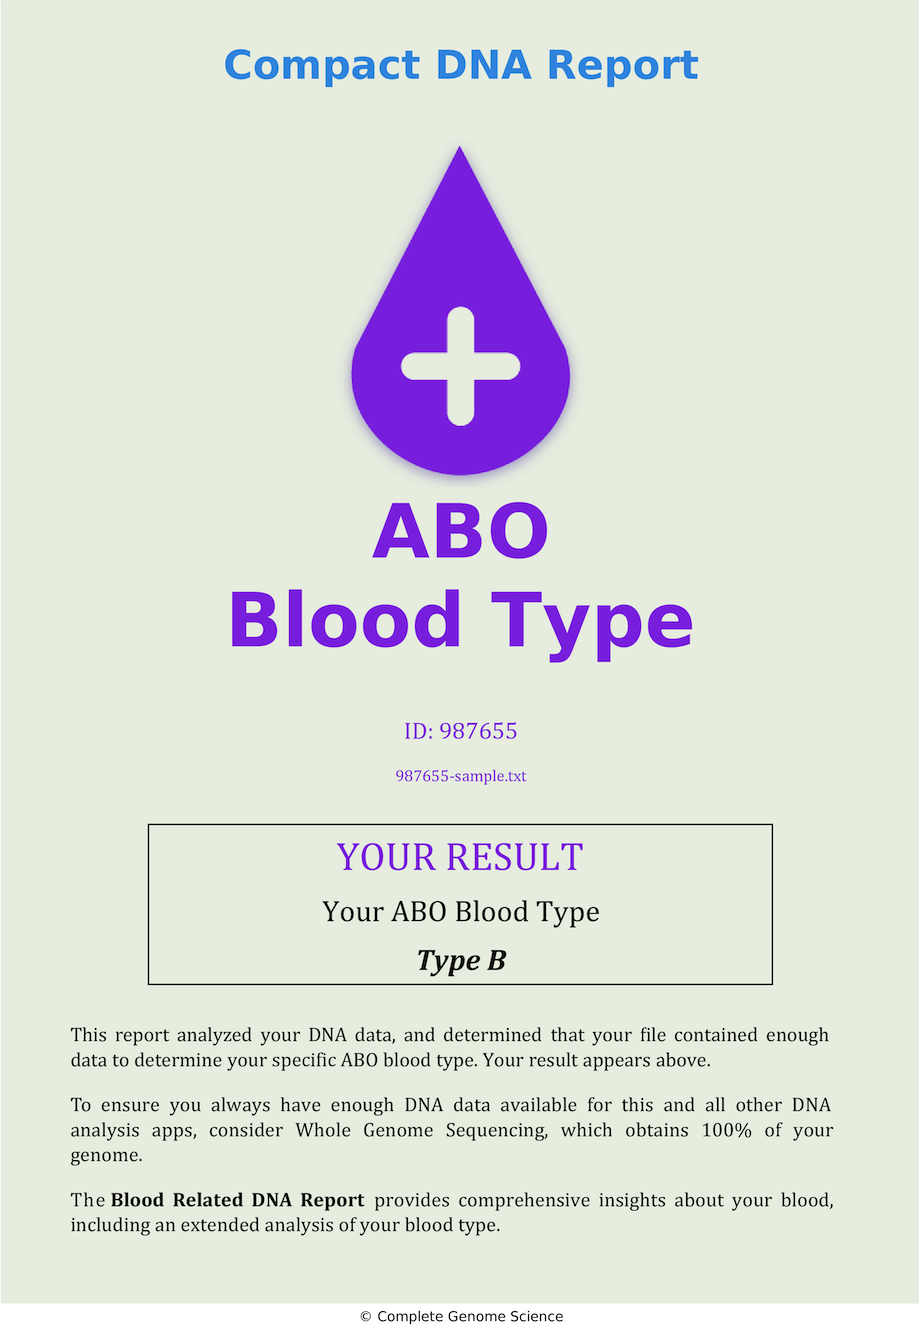 ABO Blood Type Sample DNA Report A